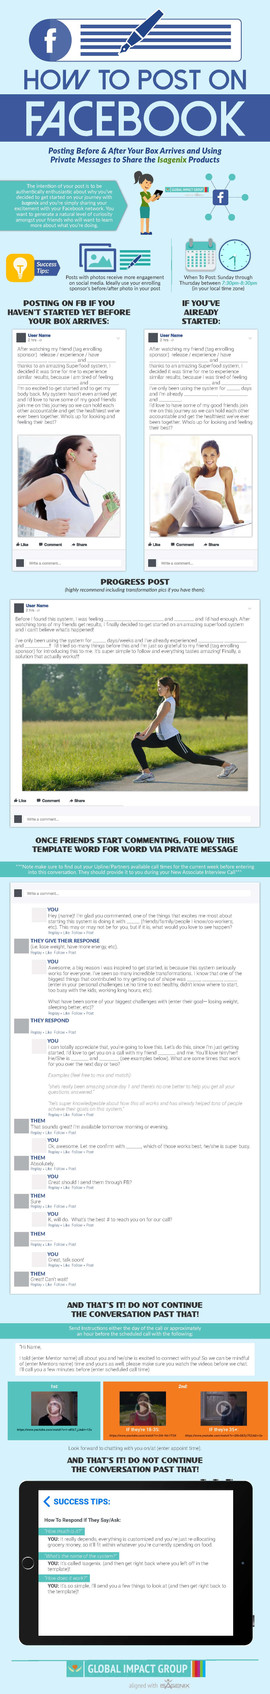 How To Post On Facebook